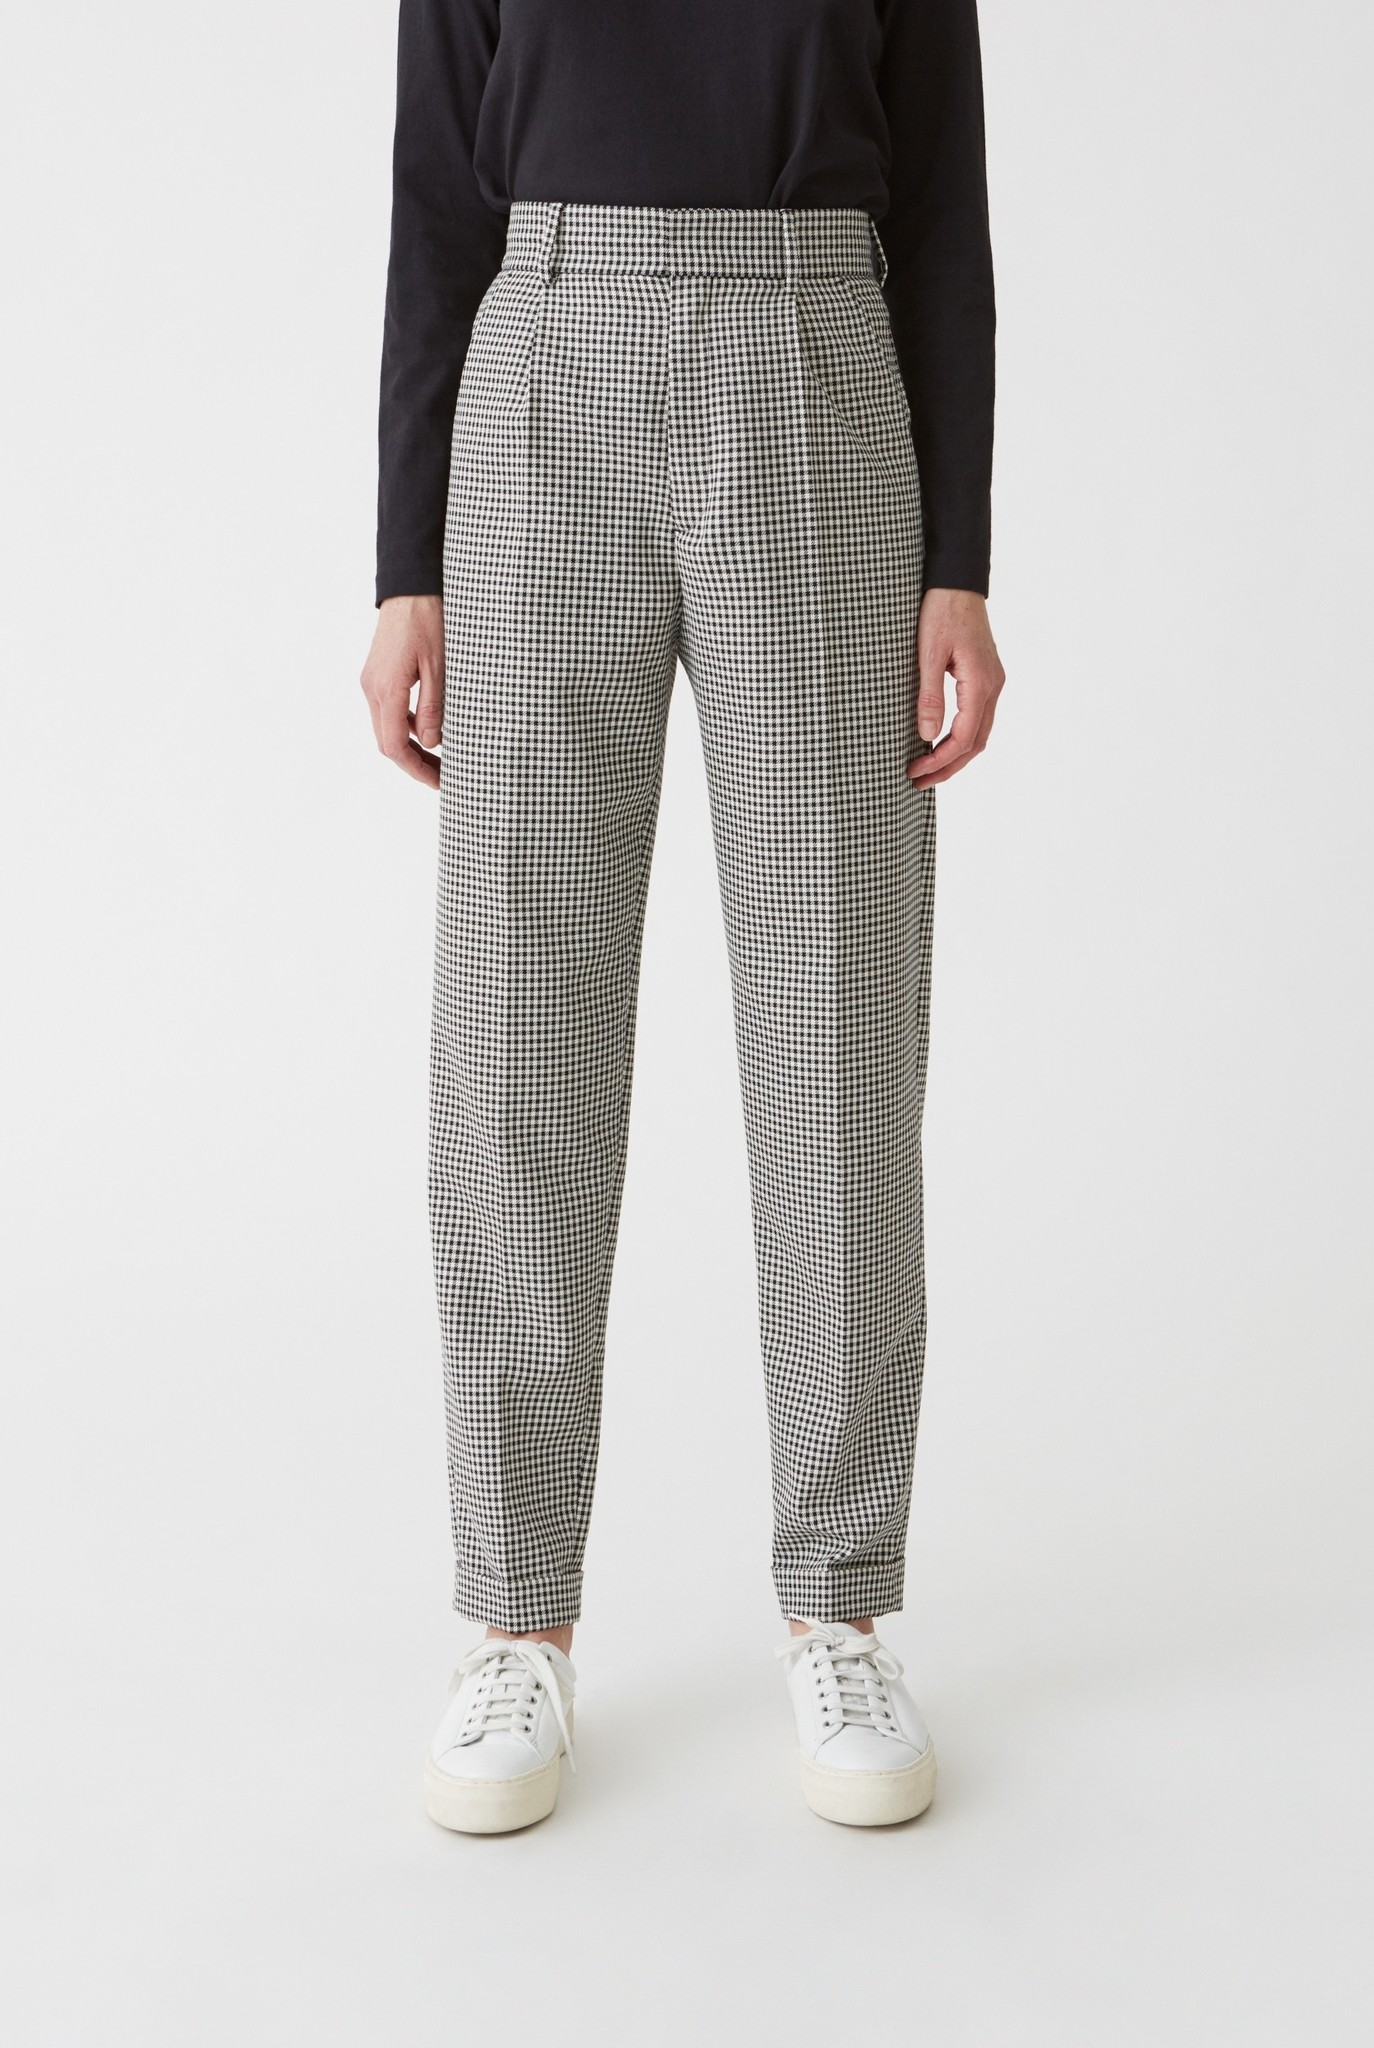 Star trouser Black check